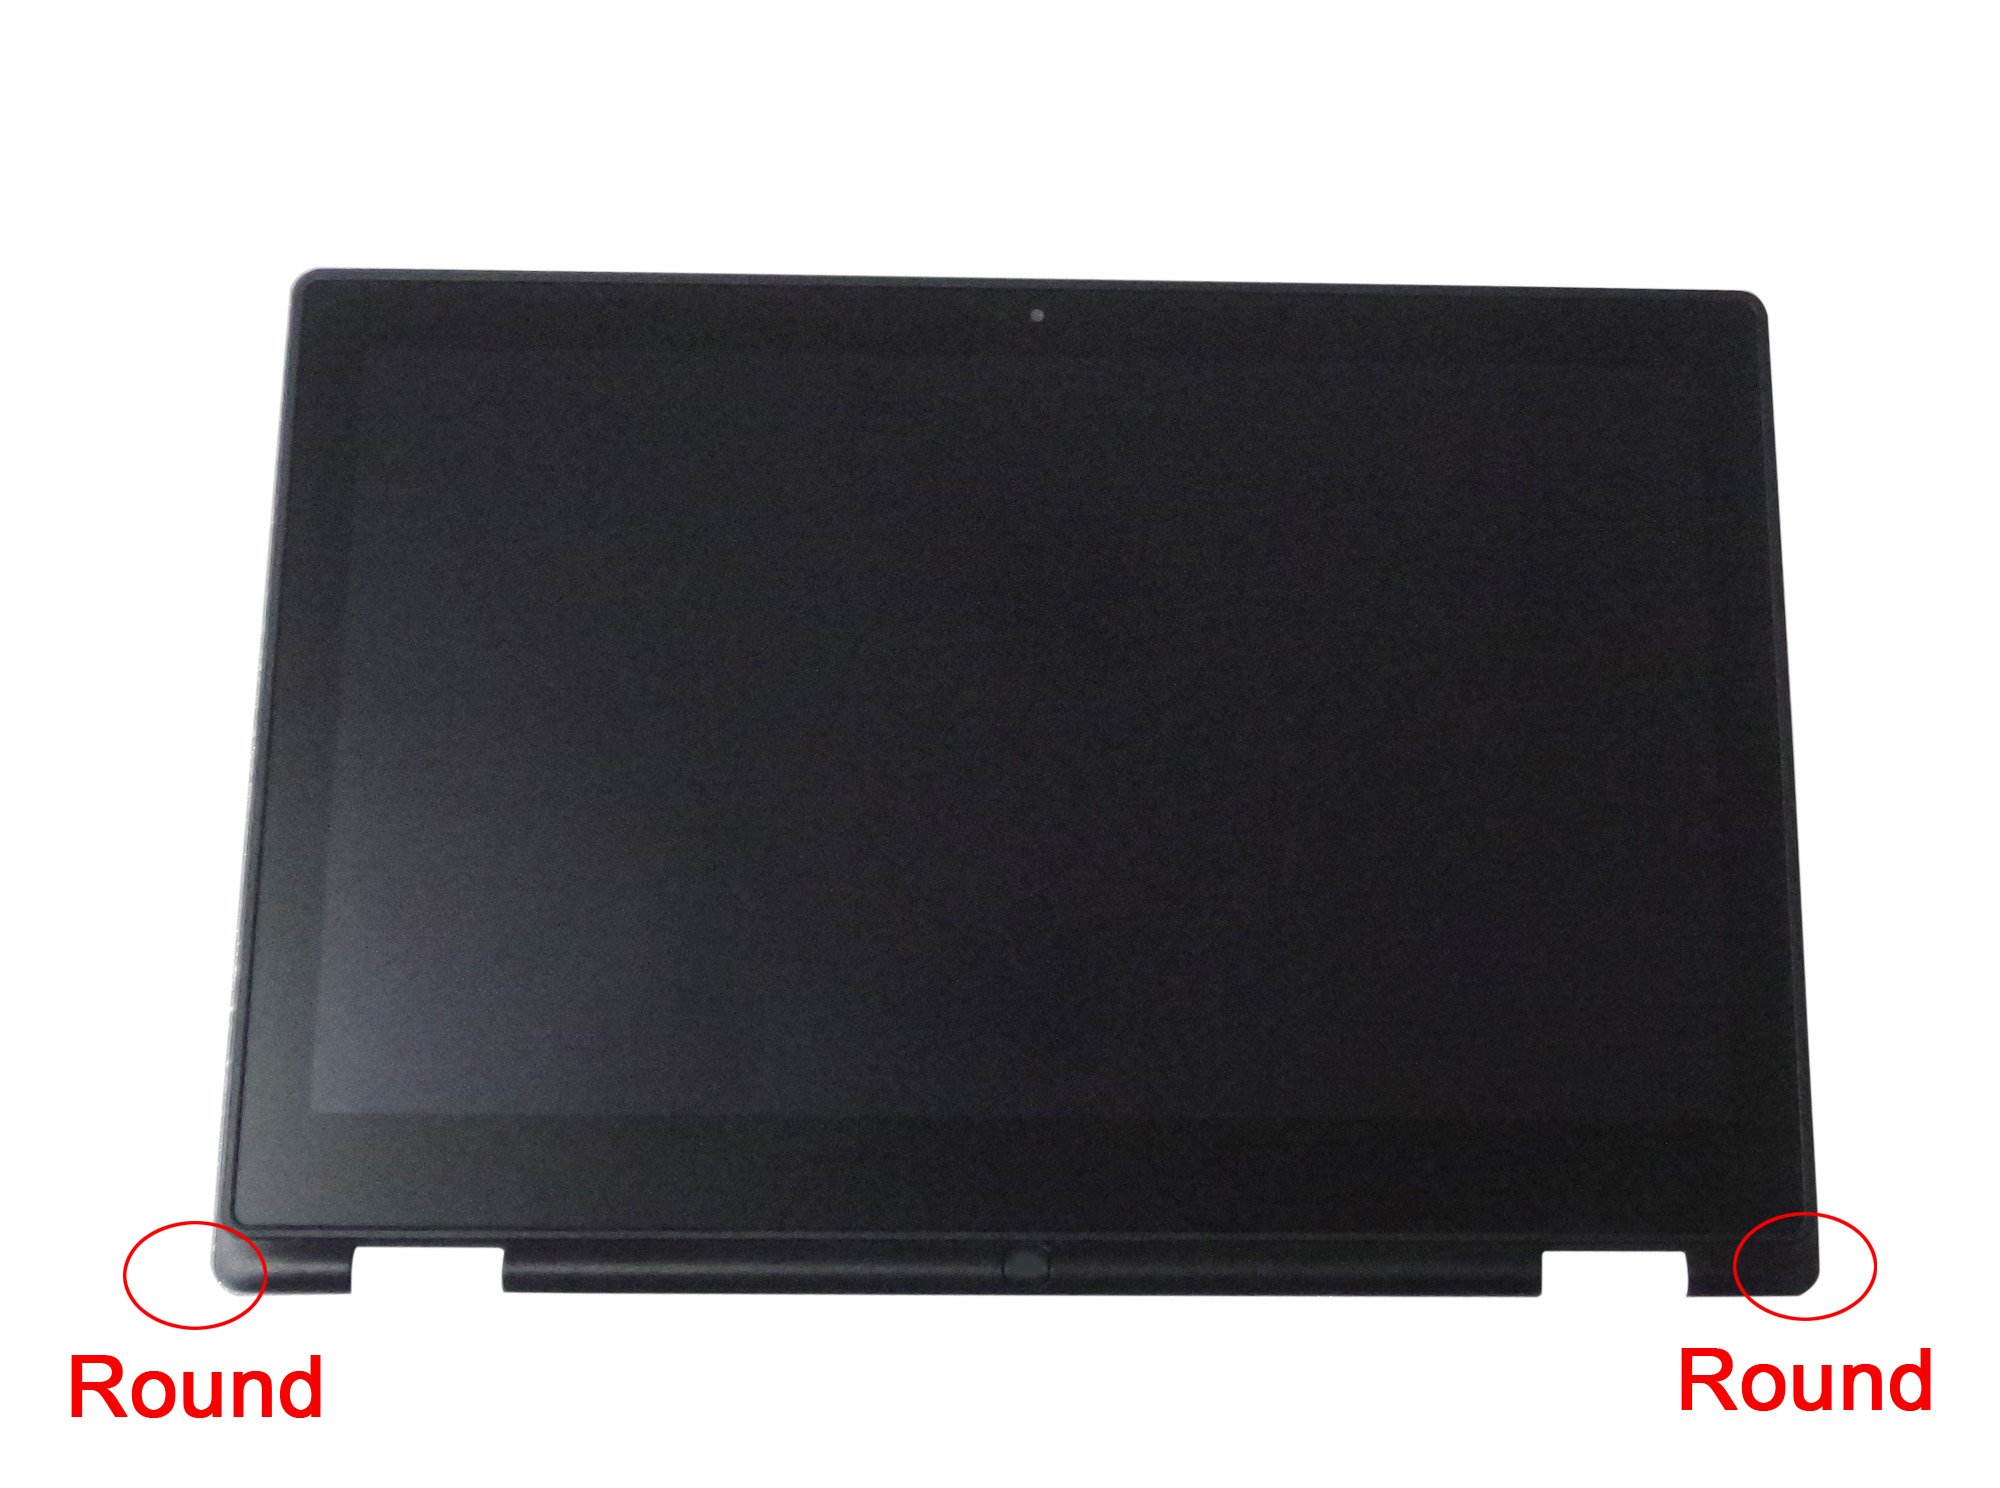 KREPLACEMENT 13.3'' Touch Screen Replacement Assembly Digitizer + LCD Display for Dell Inspiron 13-7353 Full HD 1080p 1920×1080 (Youtube Video Instruction Available) (With Bezel)